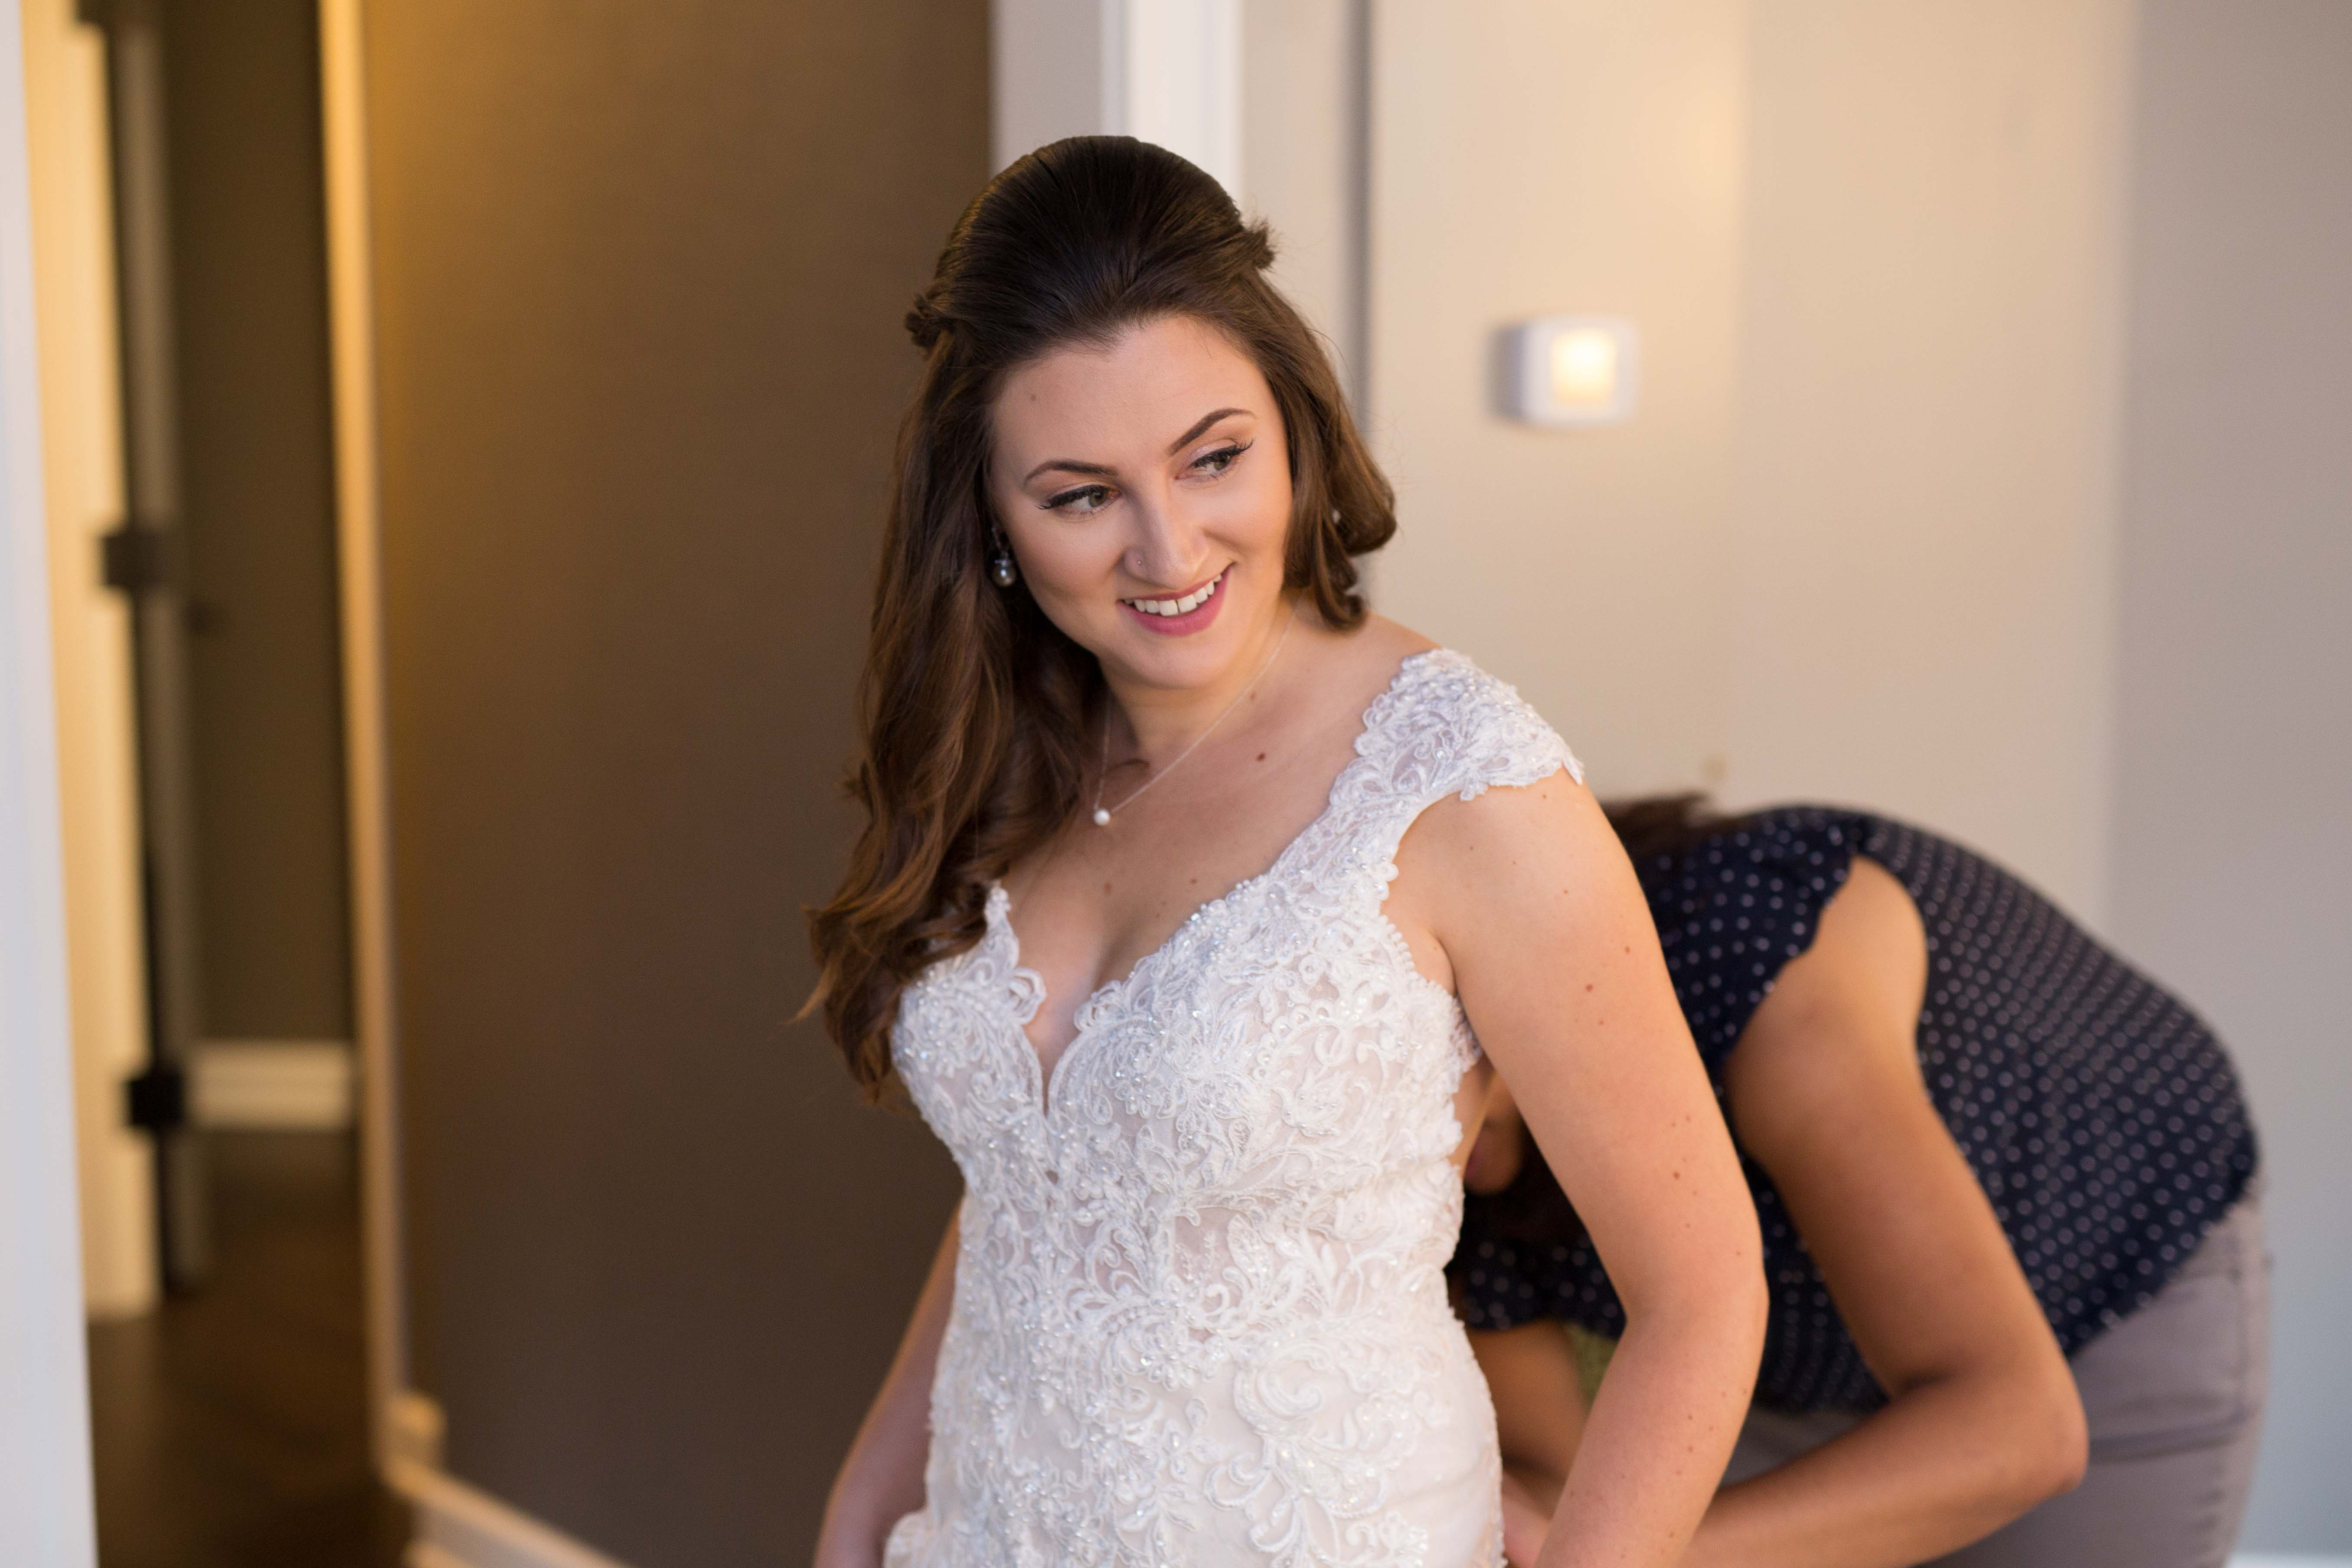 Bride Getting Ready Wedding Photography at The Goodwin Hotel Hartford CT